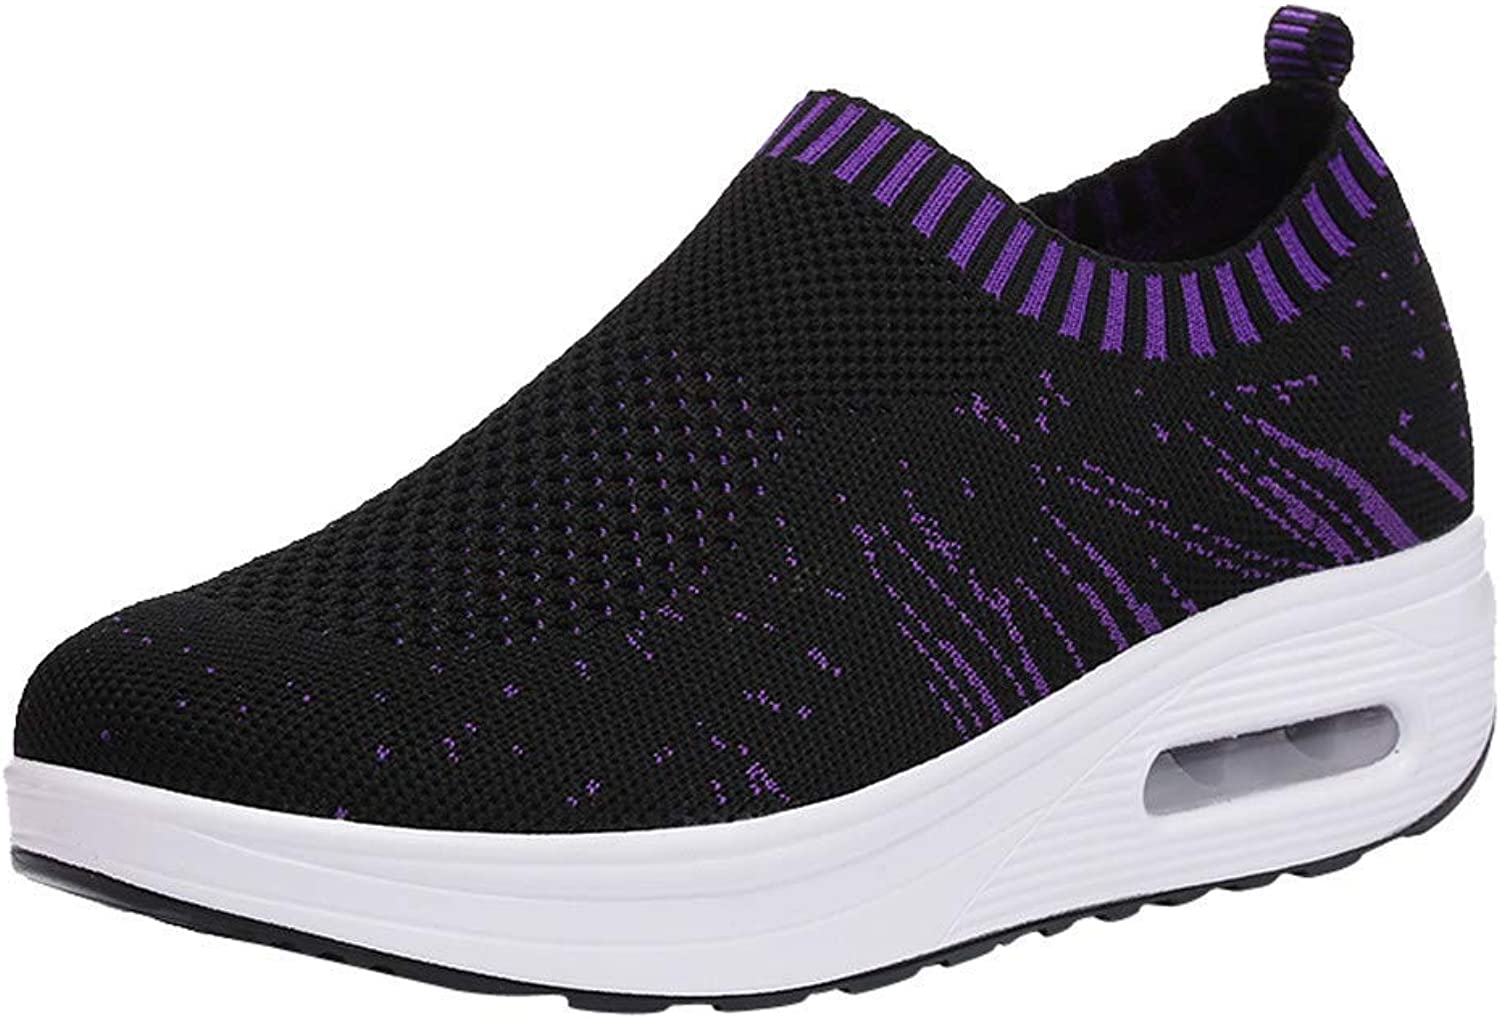 JaHGDU Women Outdoor Mesh Casual Sport shoes Thick-Soled Air Cushion shoes Sneakers Breathable Lightweight Sneaker Running shoes